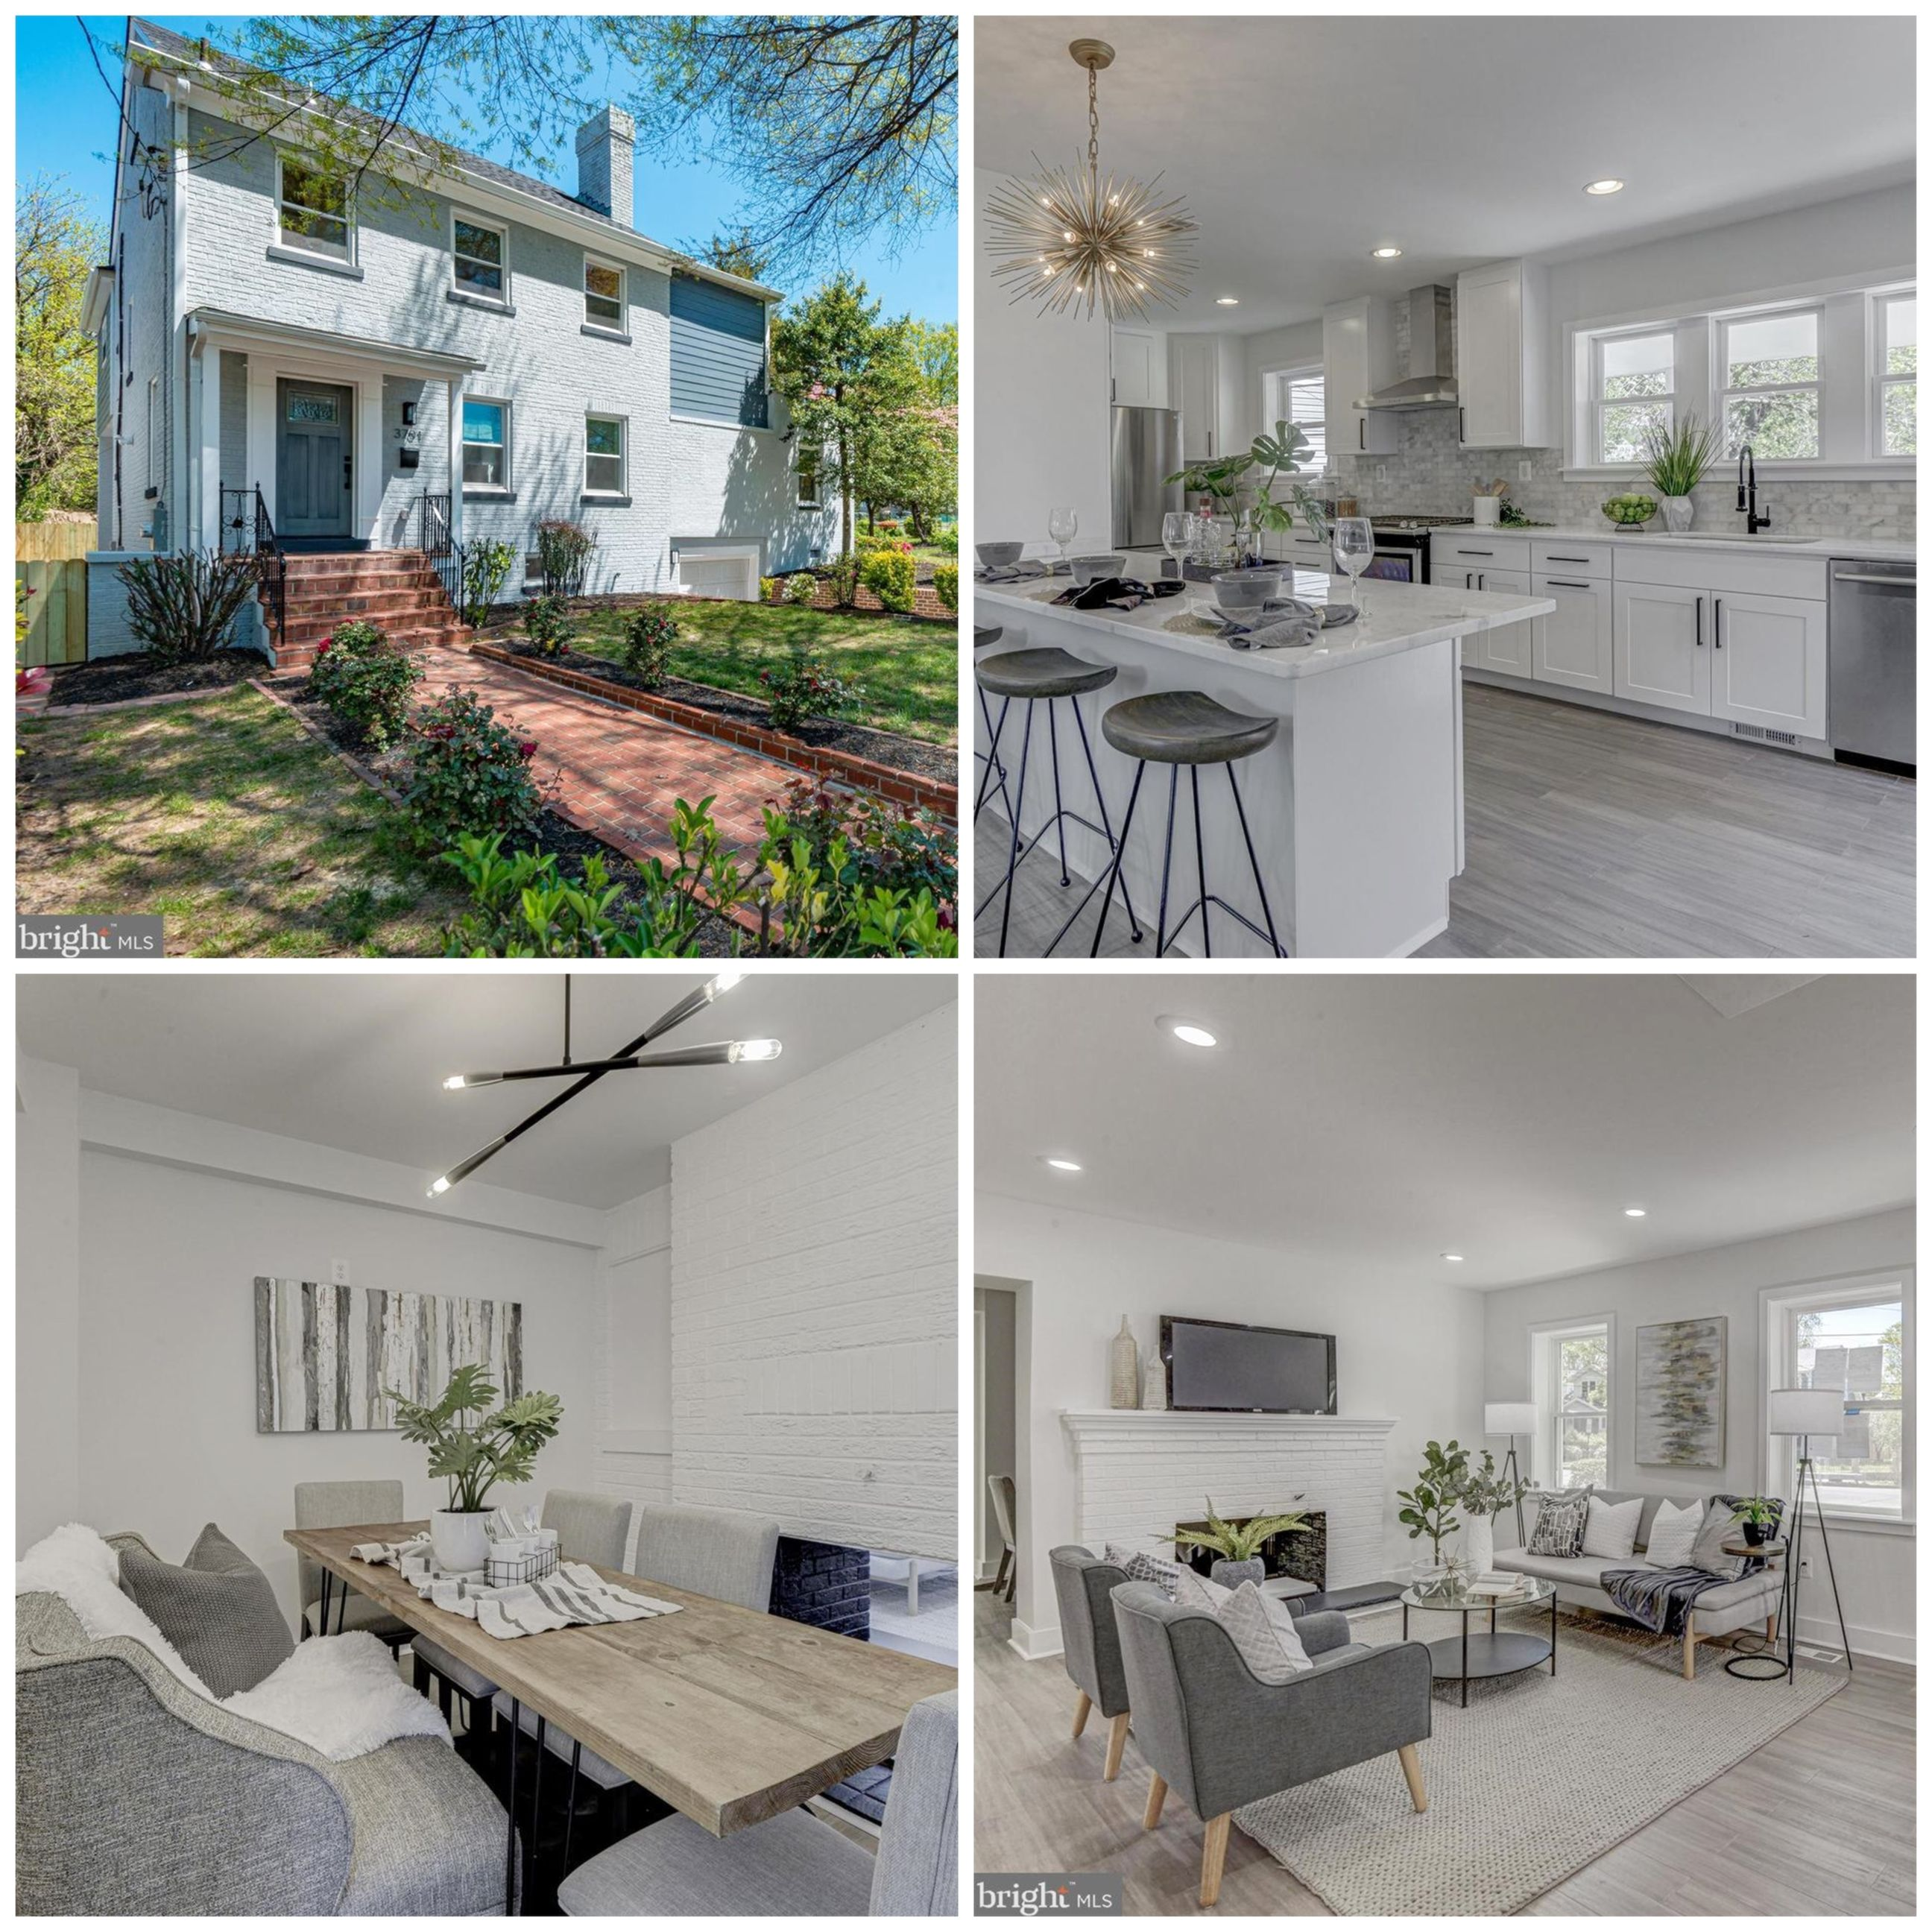 #CAZAListing #NewPrice 3701 South Dakota Ave NE, Washington, DC 20018 MLS DCDC466432 🛏🛏 4 🛁🛁 3.5 Get More Info or Schedule a Virtual or In-person Home Tour - CALL 703.651.6735 #Homes #HomeBuying #Realtor